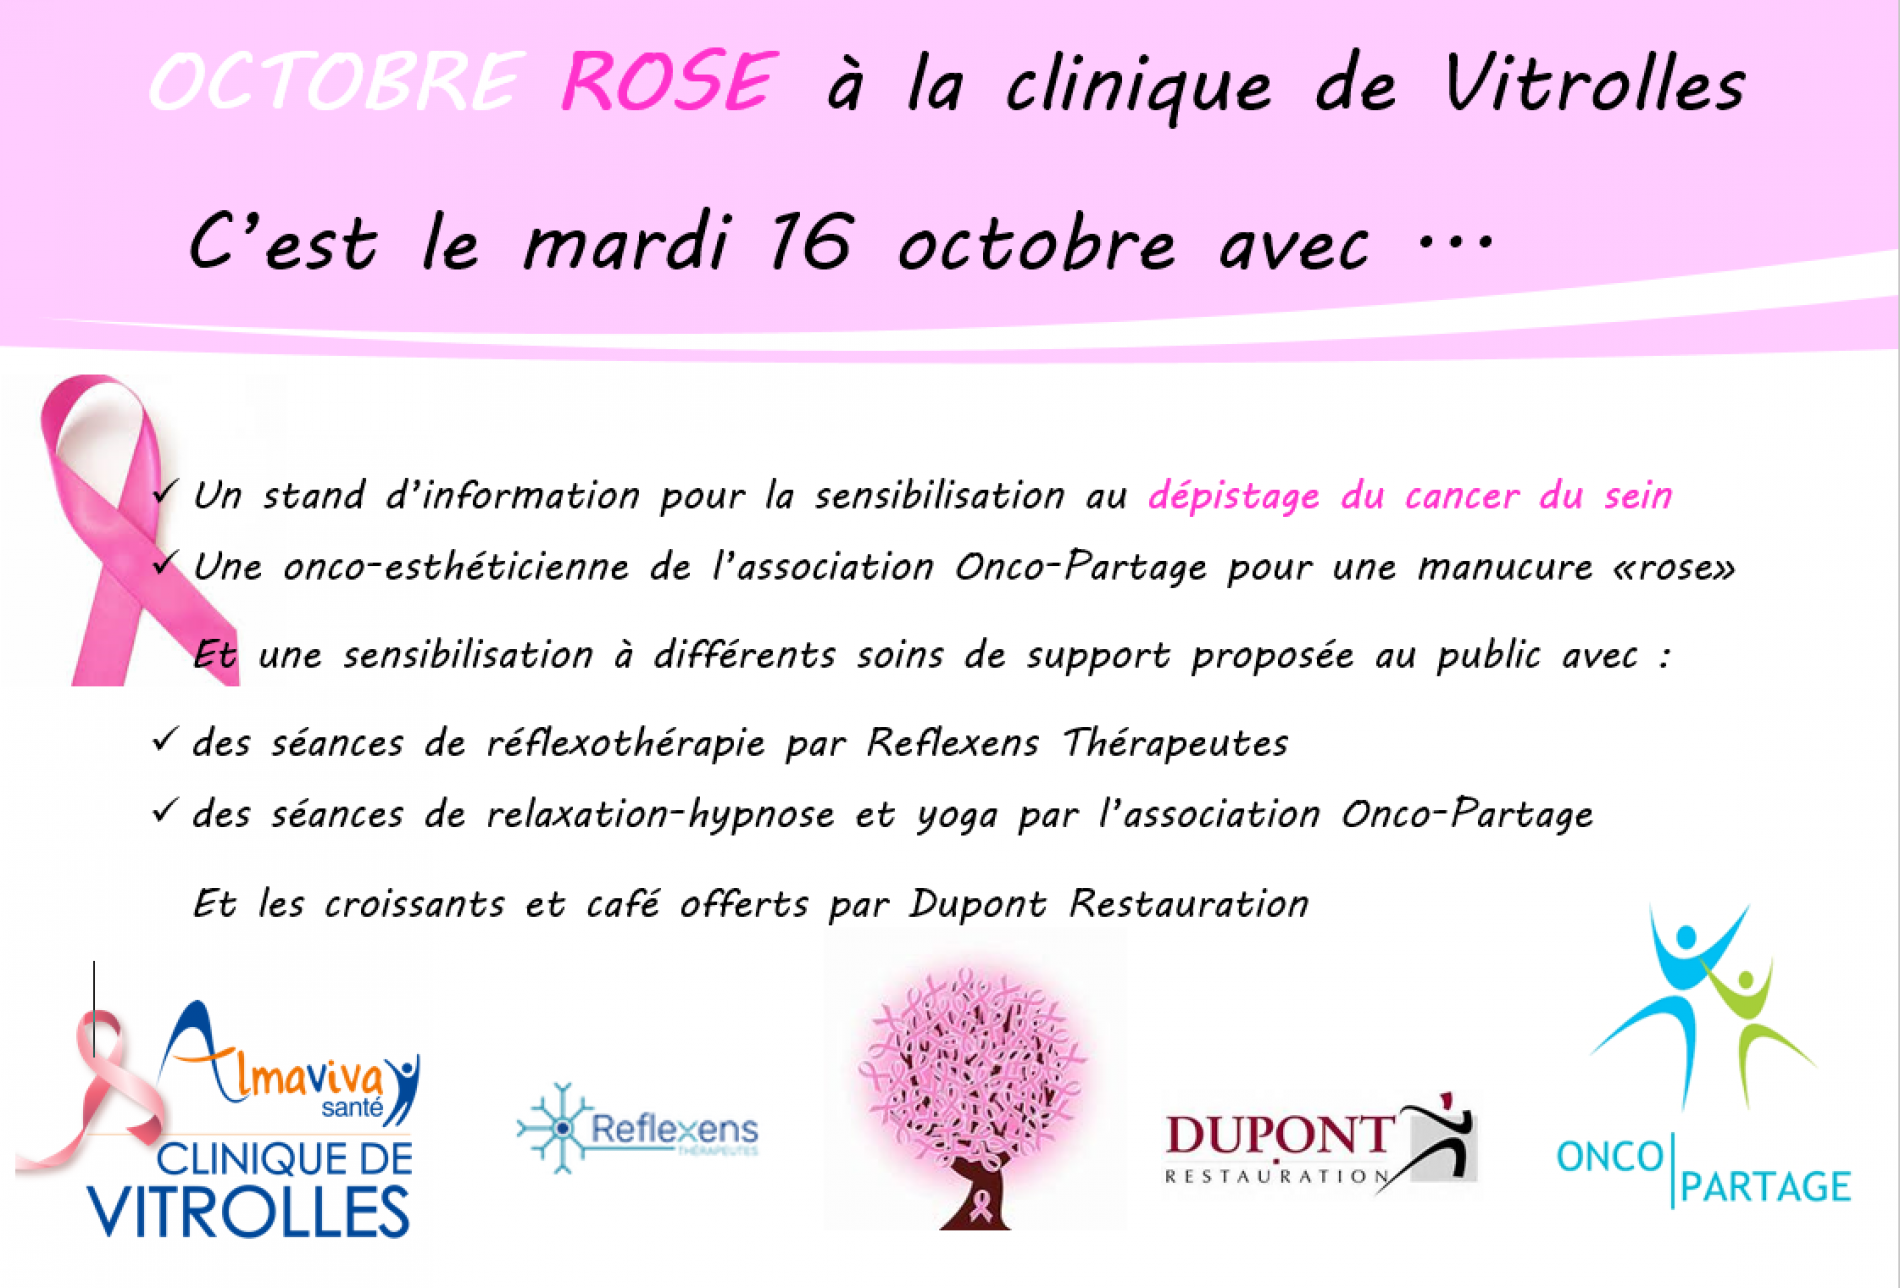 Octobre rose  2018 à la clinique